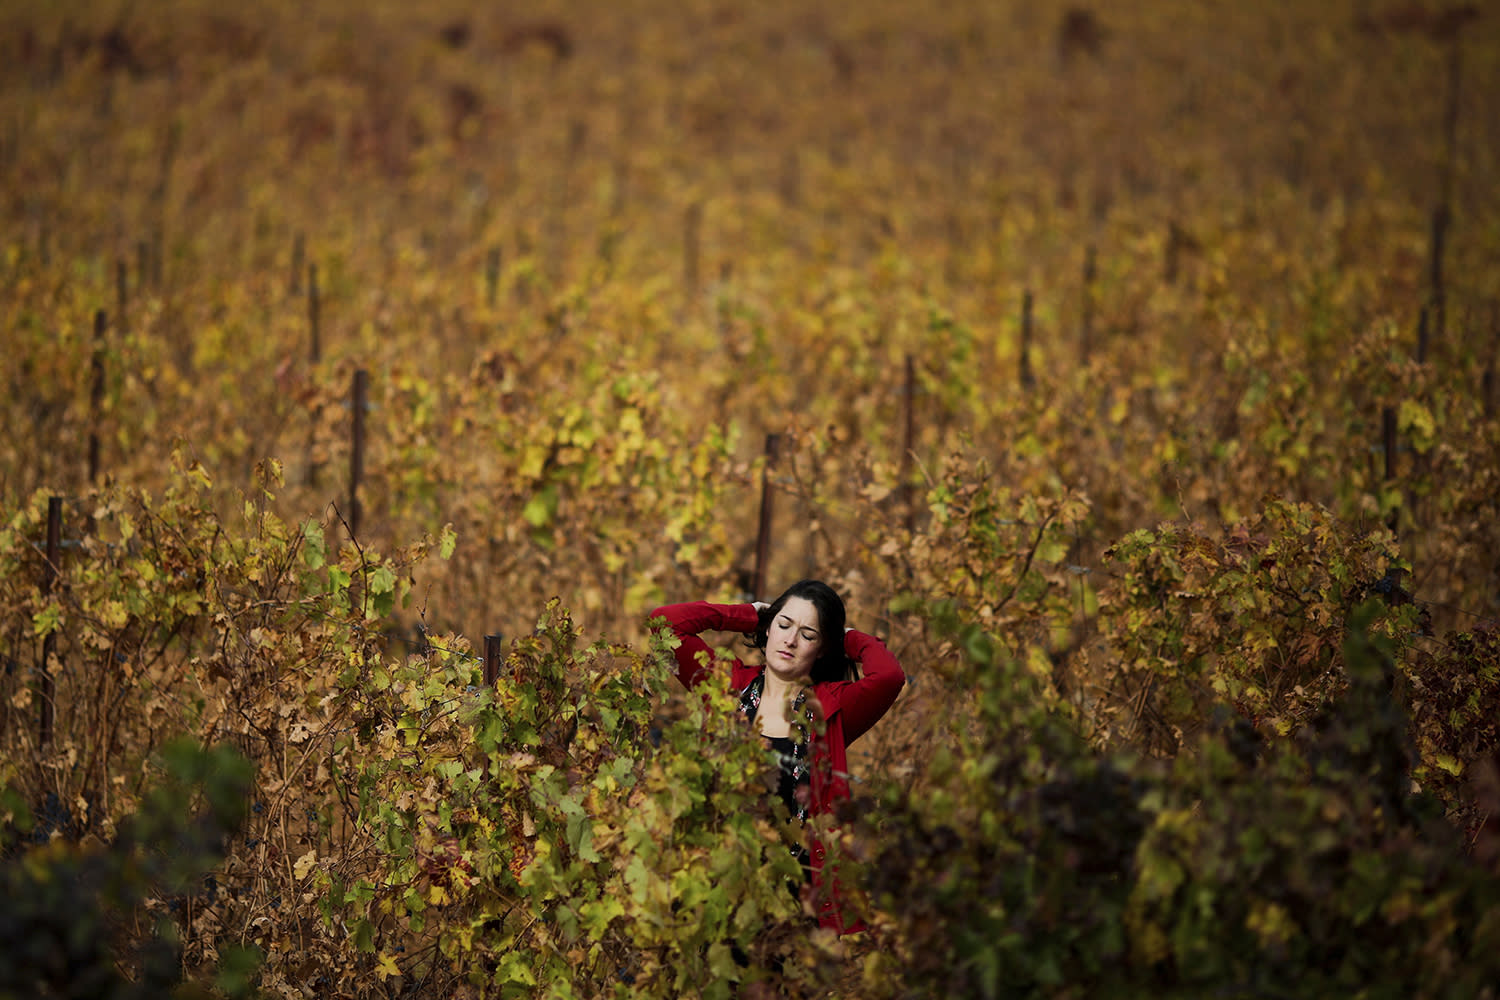 <p>A tourist reacts as she walks through the vineyard of the Chateau Kefraya winery in Bekaa valley, east Lebanon, Nov. 20, 2016. (Photo: Hassan Ammar/AP) </p>